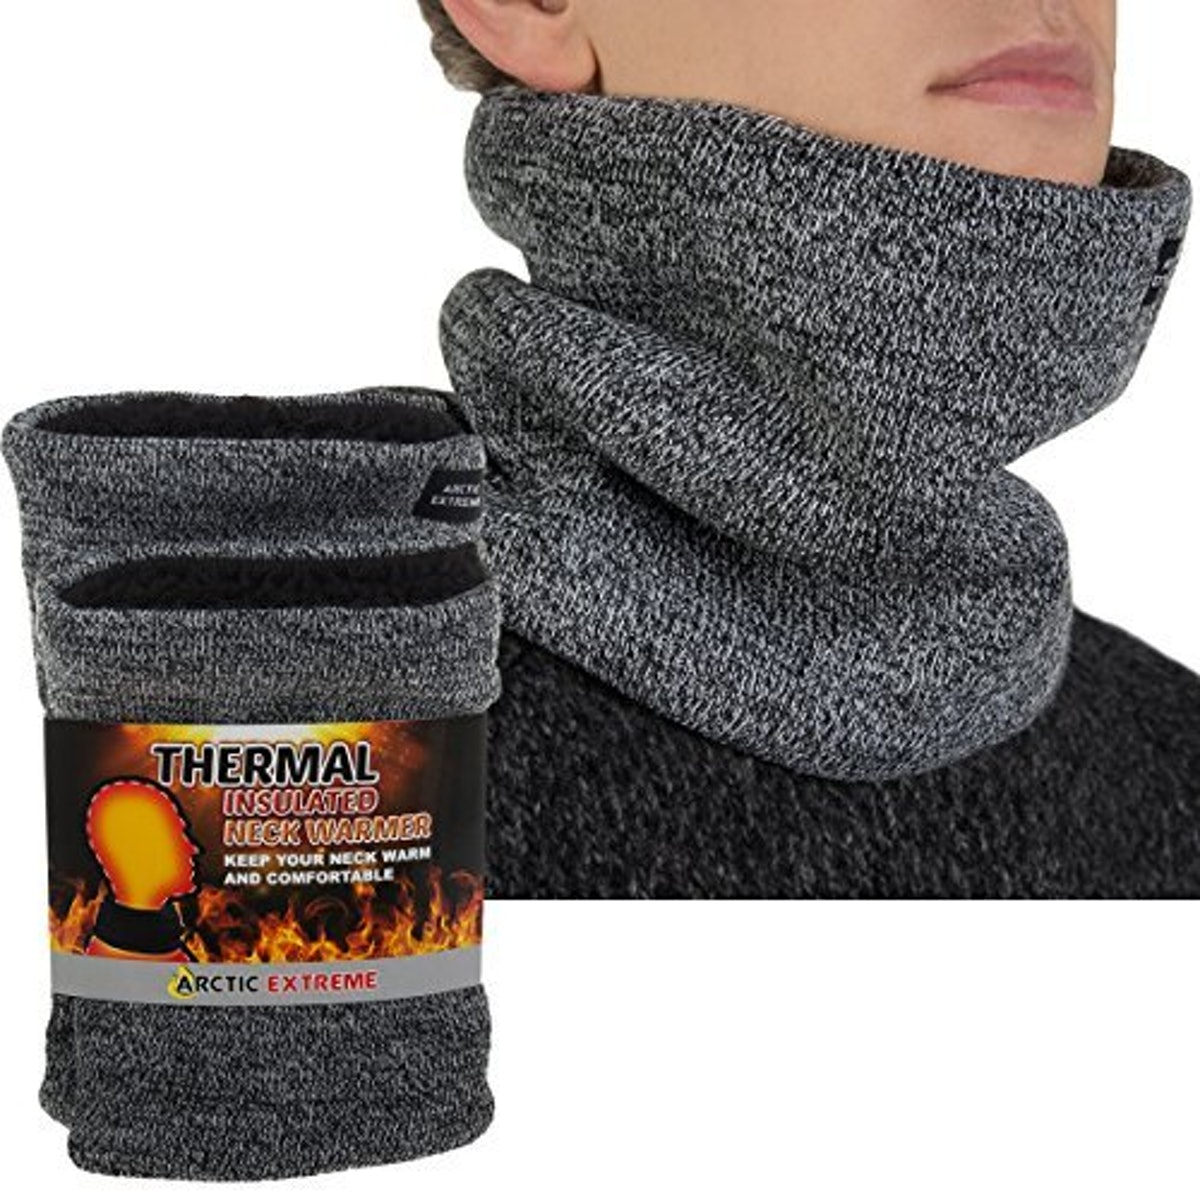 Arctic Heat Trapping Thermal Neck Warmers (2 Pack)